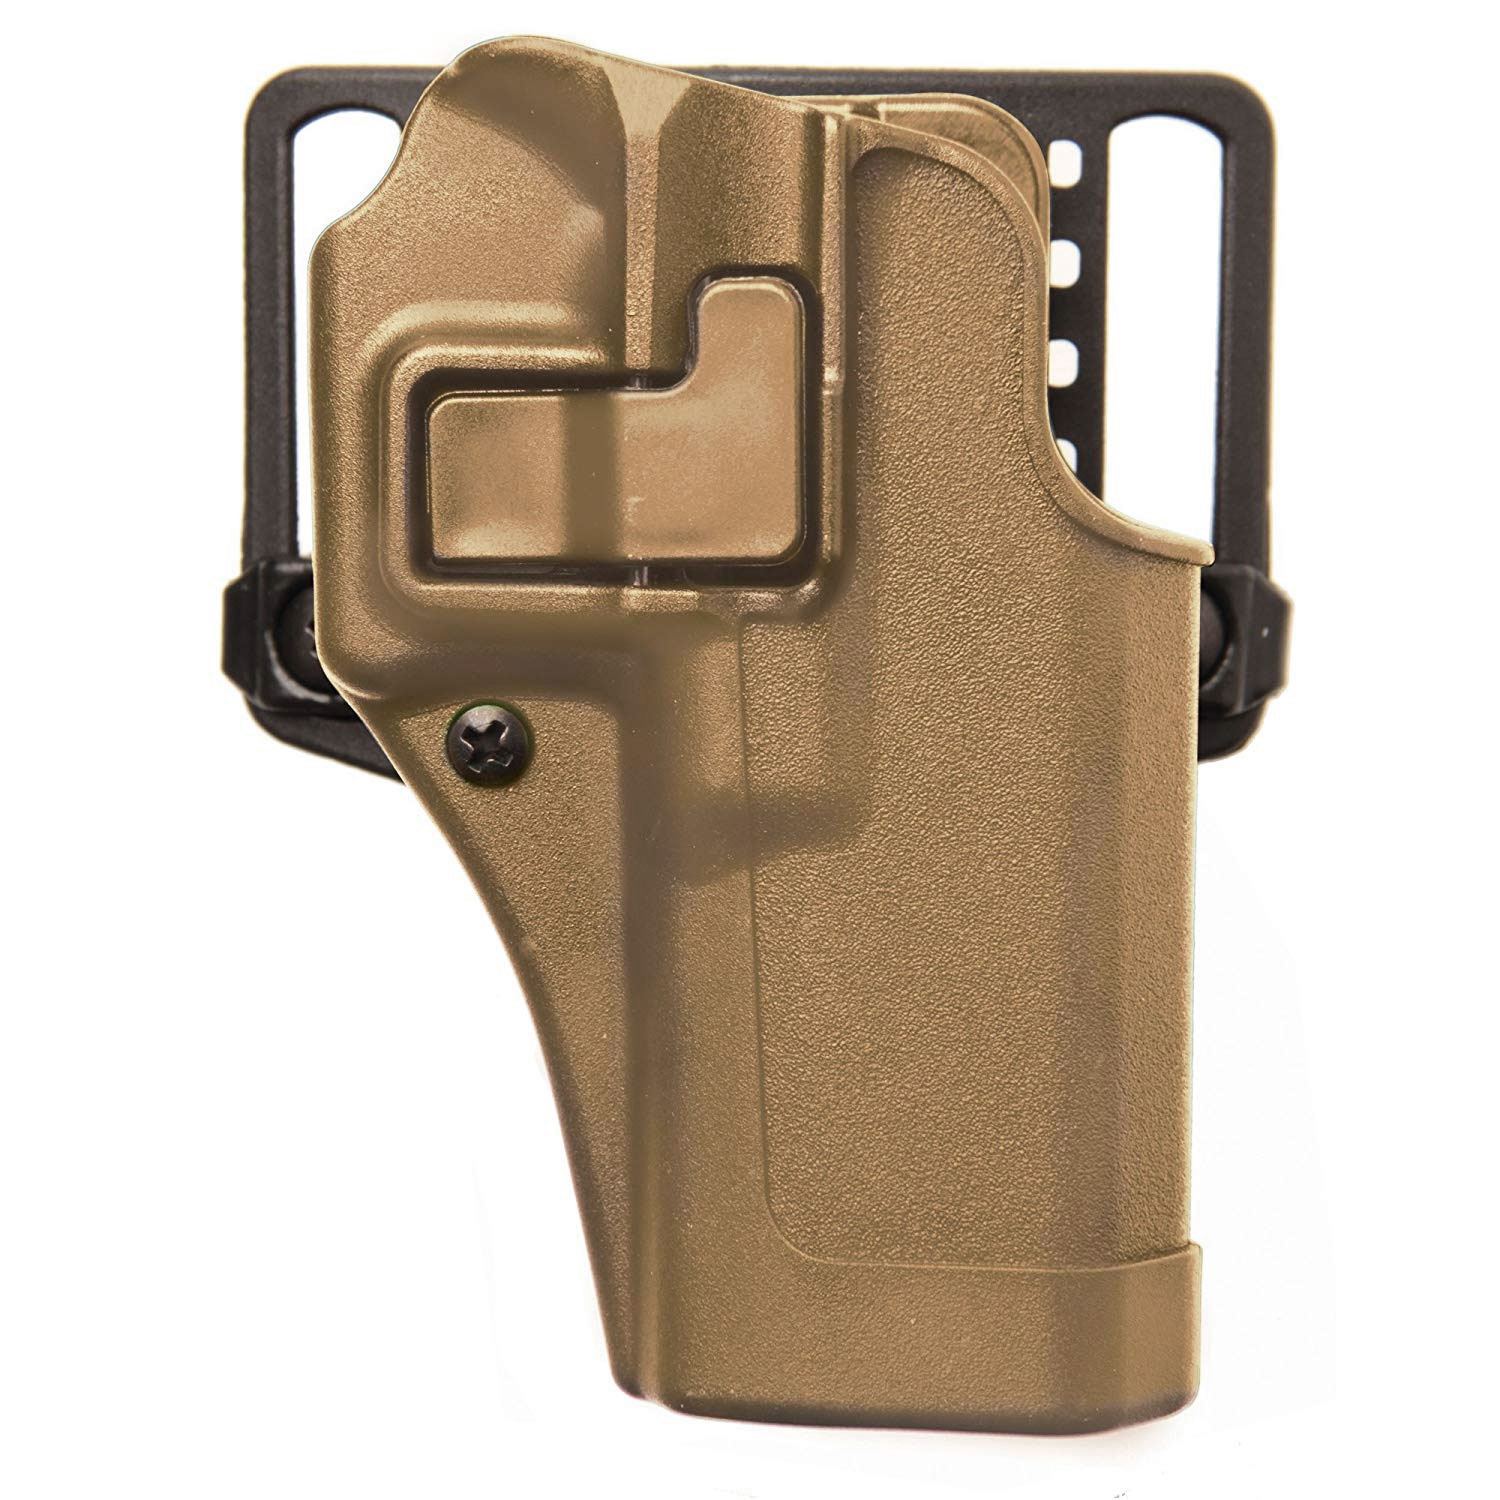 All Styles Blackhawk Serpa CQC Concealment Holster With Paddle And Belt Loop